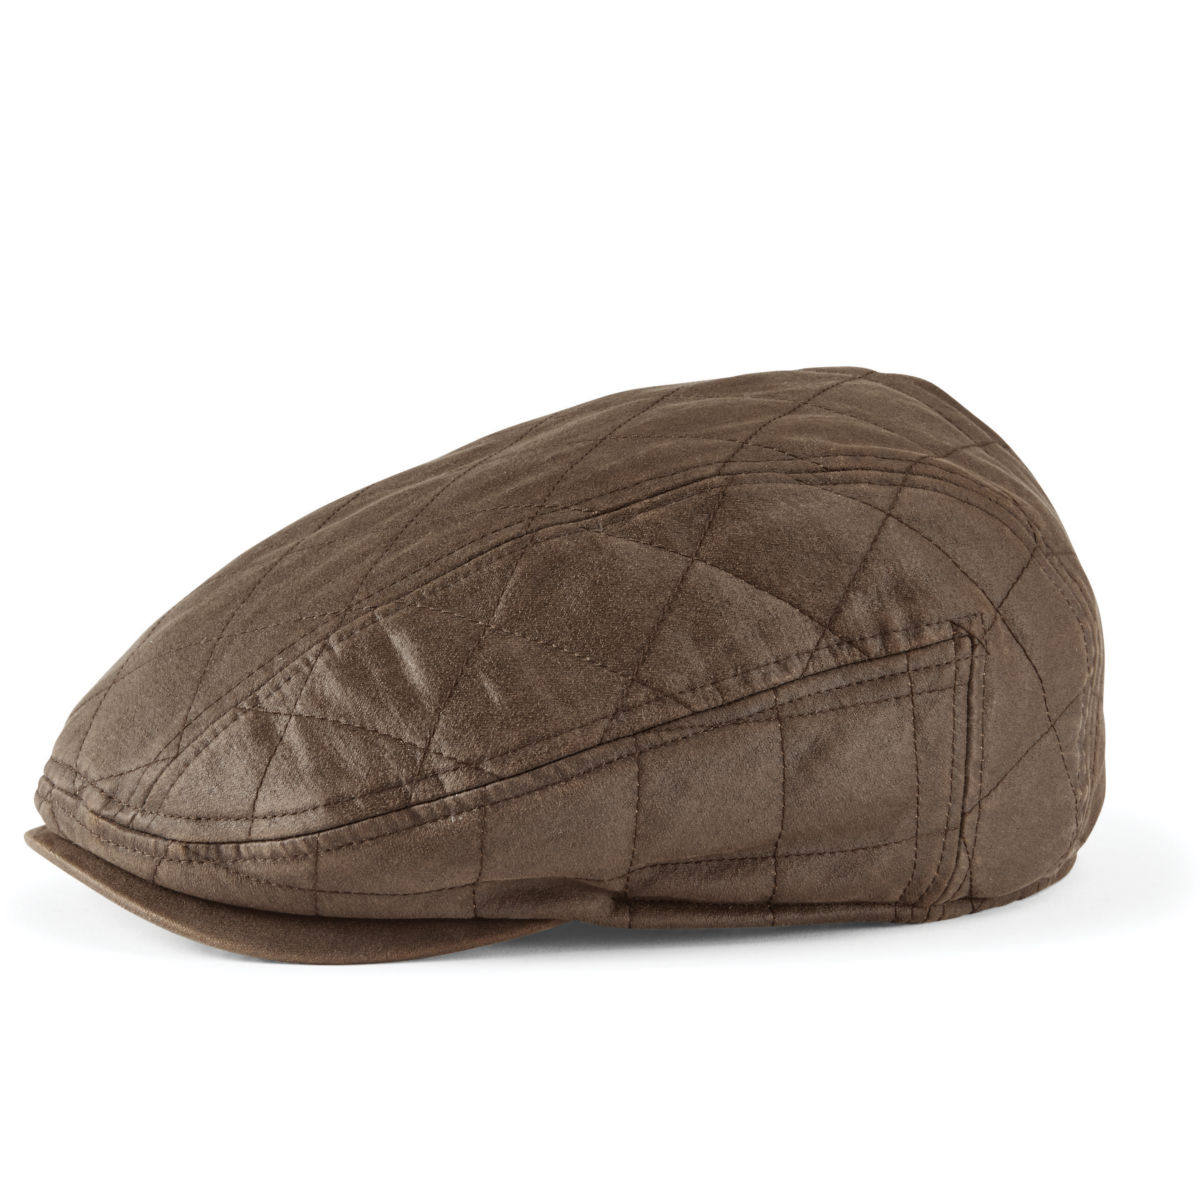 Waxed Cotton Quilted Driving Cap - BROWNimage number 0